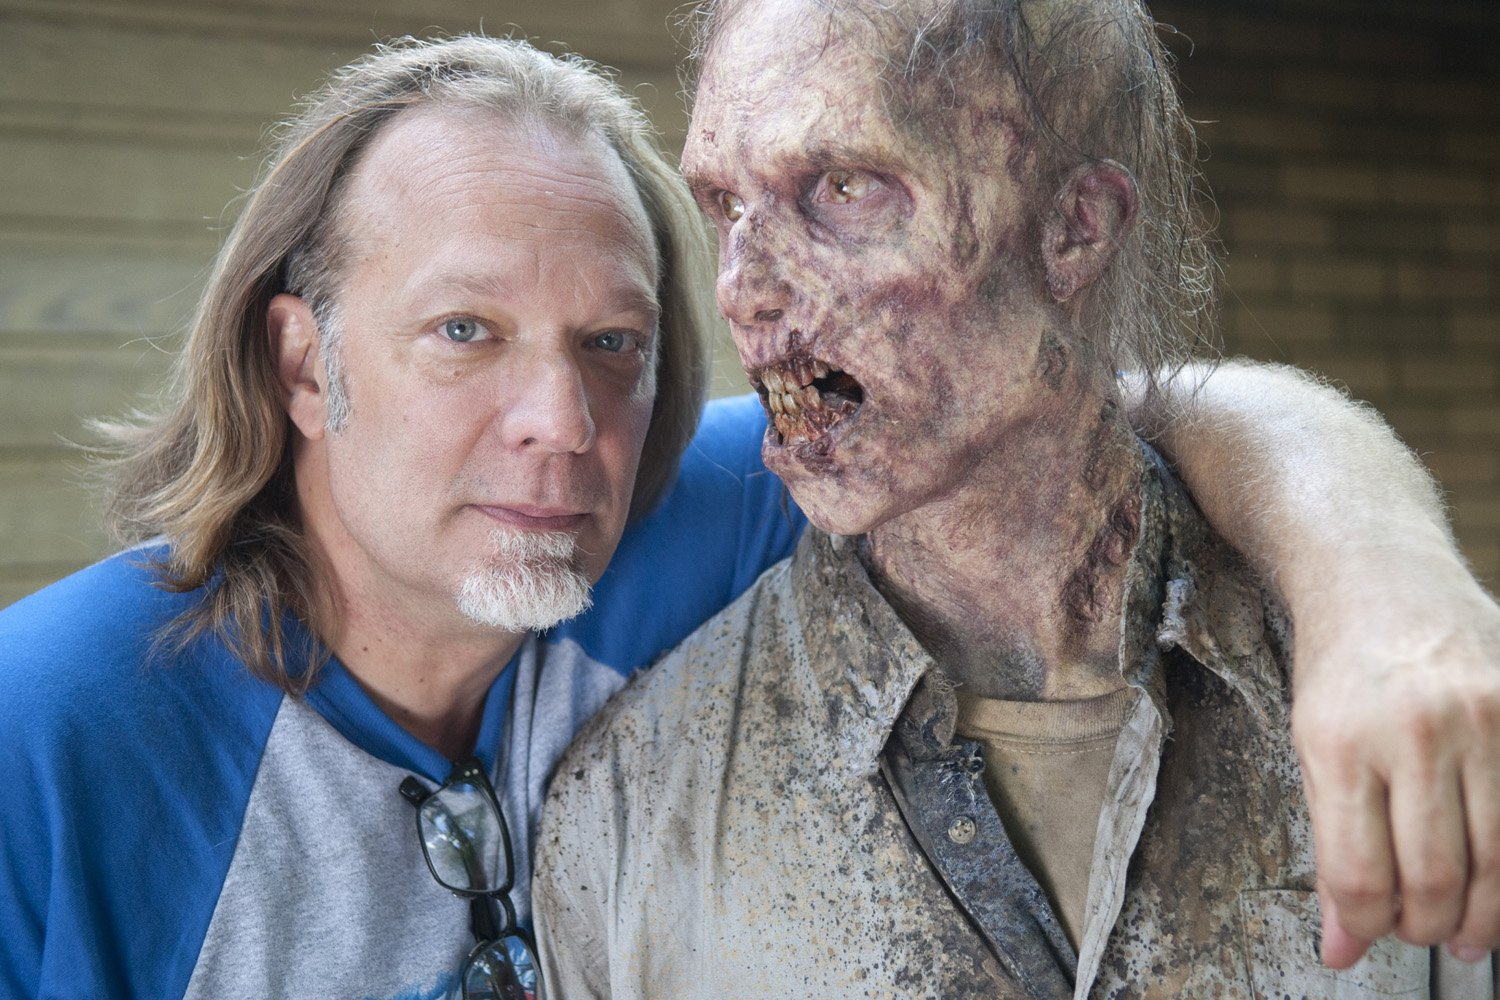 https://www.film.ru/sites/default/files/images/06afe59ba66dda7e30240a8d10e32f0f30c7cd2b-interview-twd-s-greg-nicotero-talks-zombies-what-it-means-to-be-a-fan.jpeg